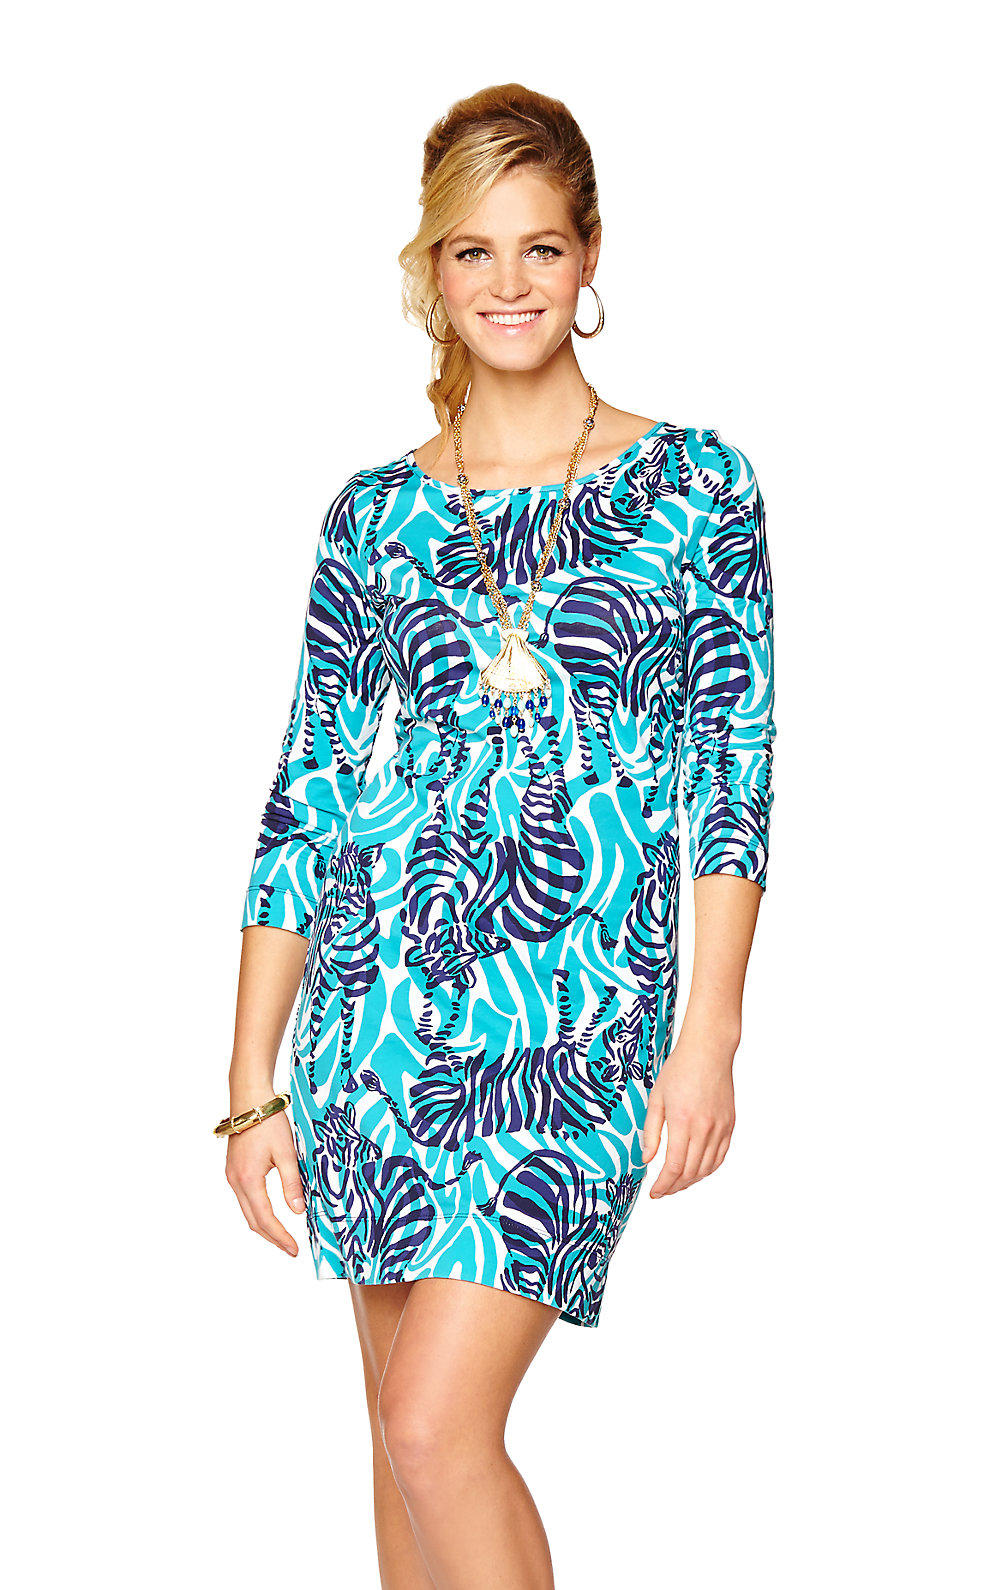 Lilly Pulitzer Marlowe Boatneck T Shirt From Lilly Pulitzer